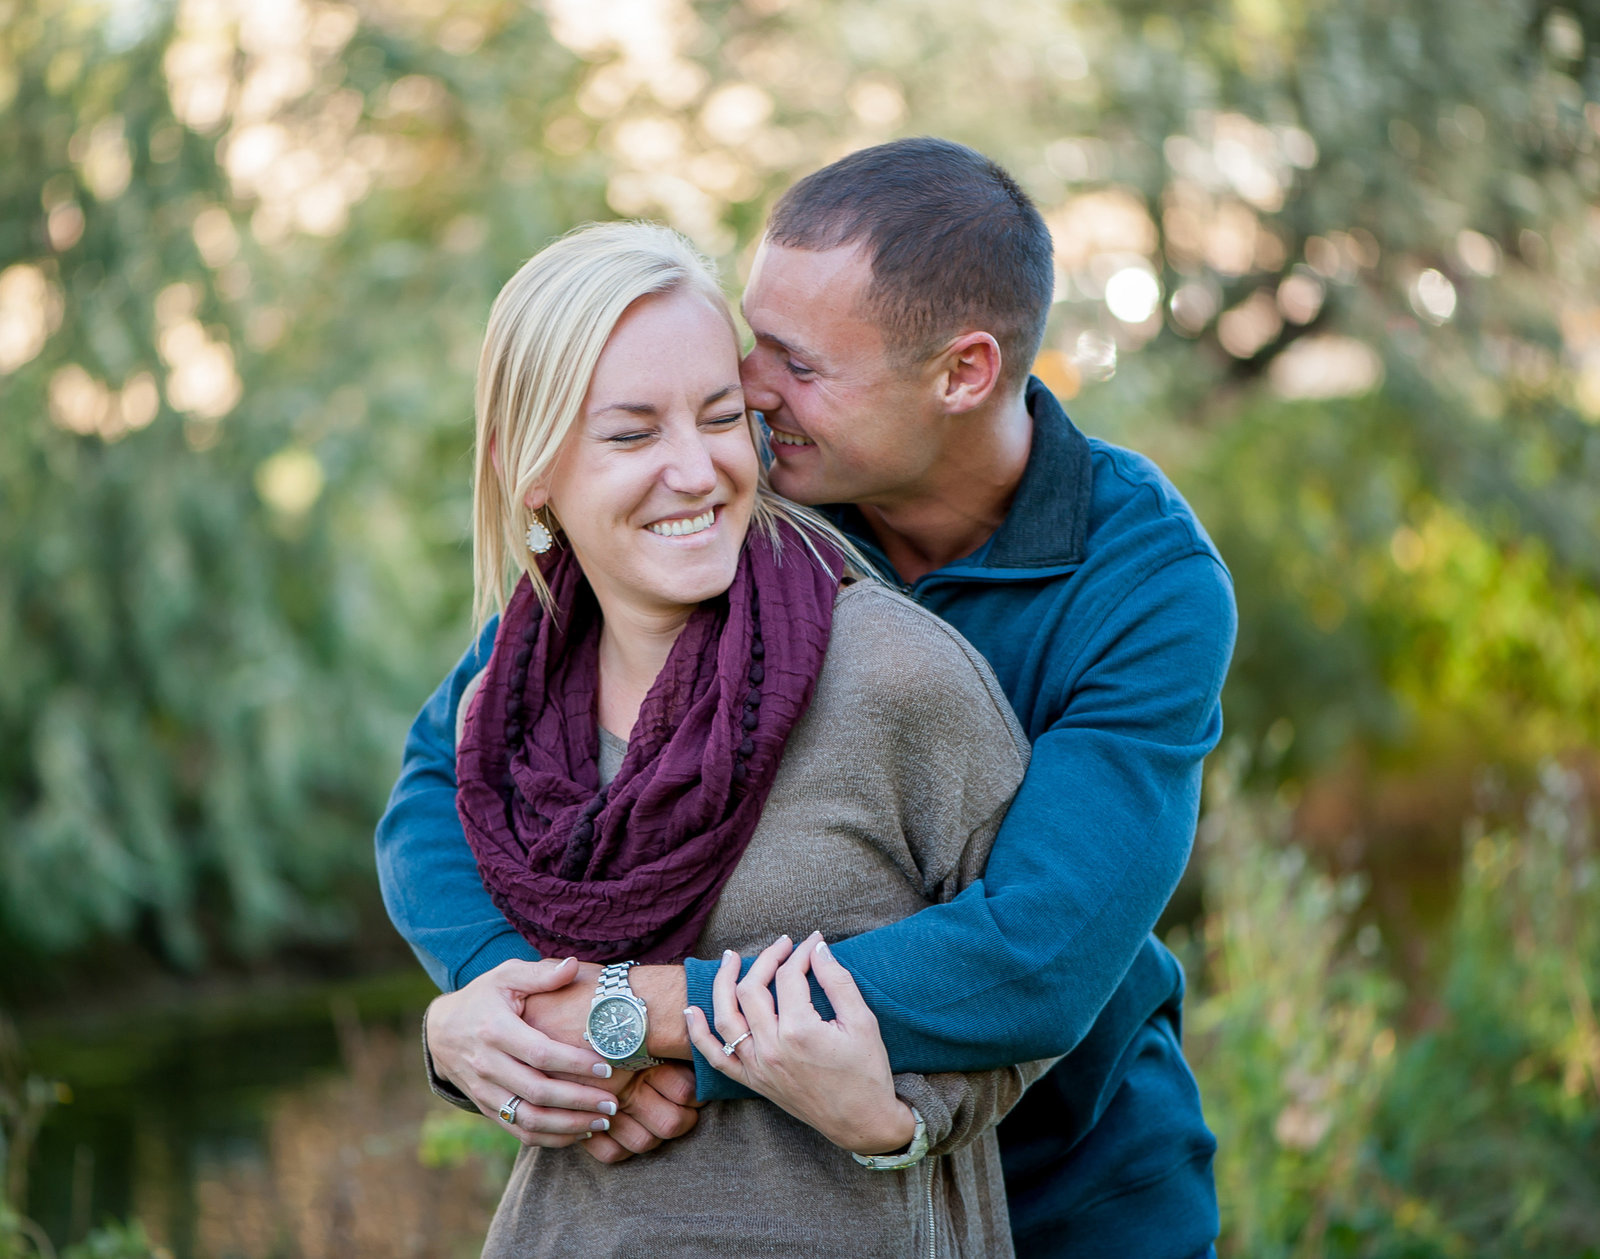 Grand Forks engagement photographer kris kandel